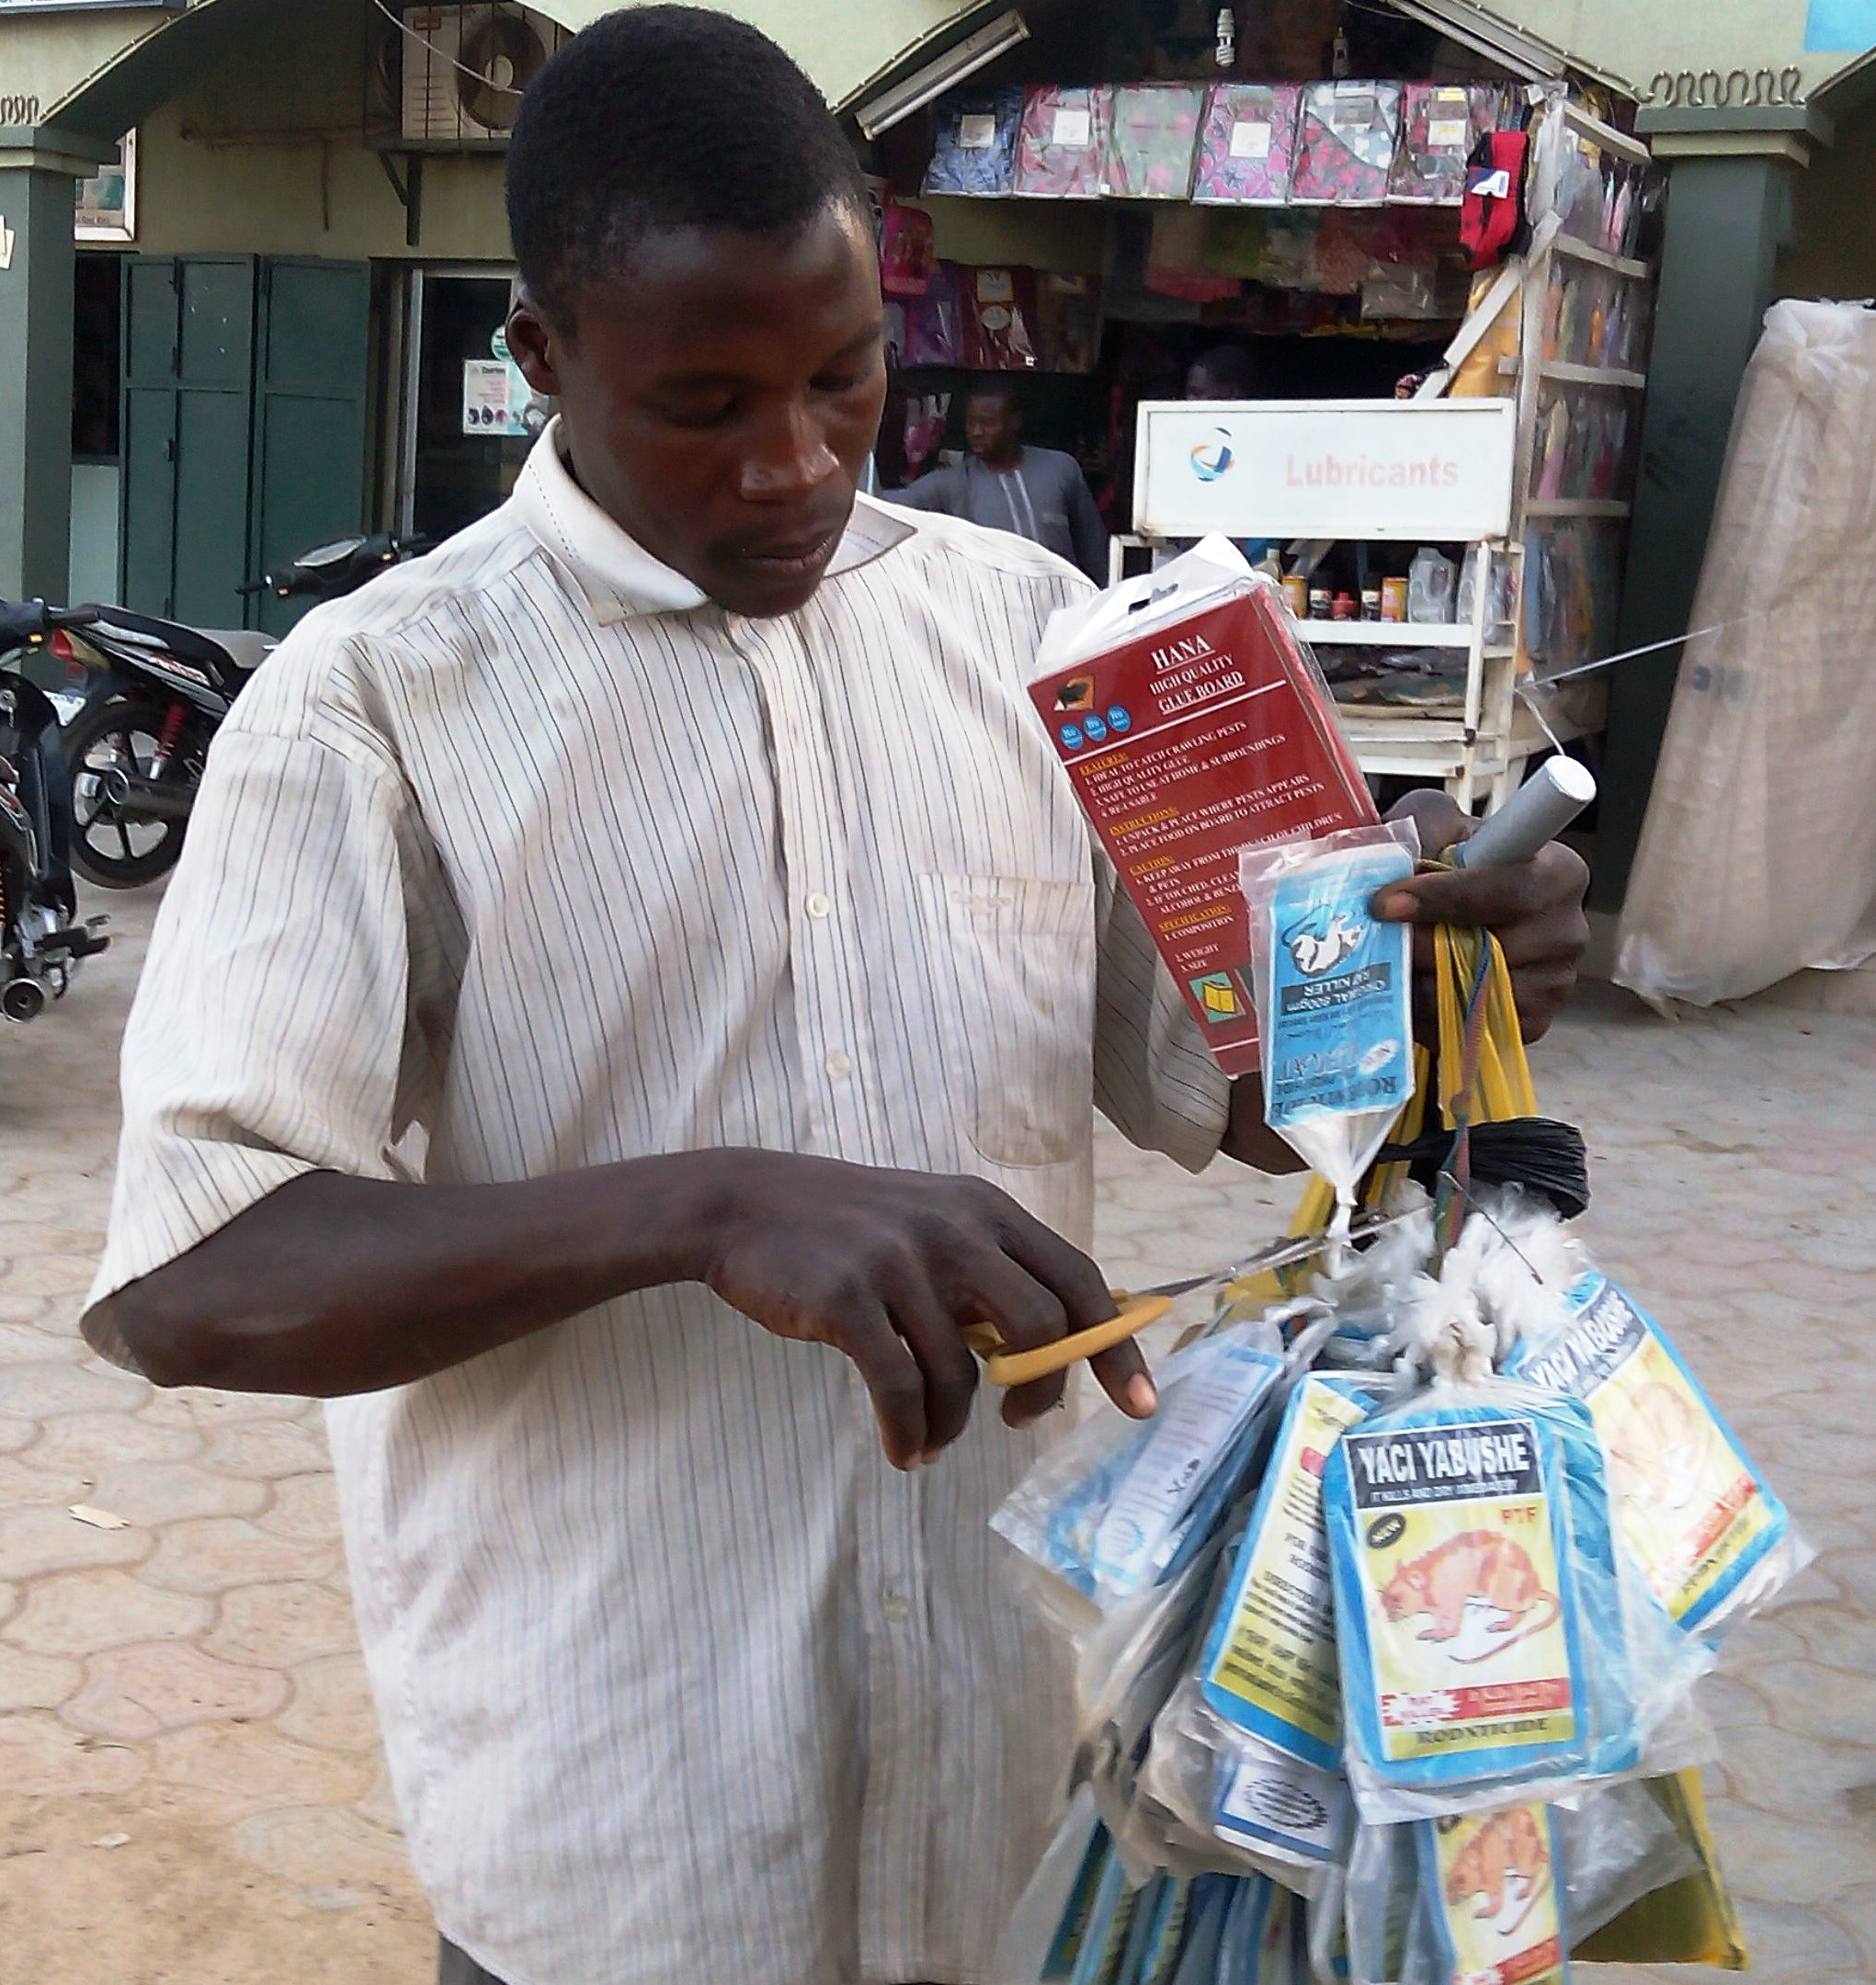 A vendor sells bags of rat poison in northern Nigeria's largest city of Kano, Jan. 18, 2016.